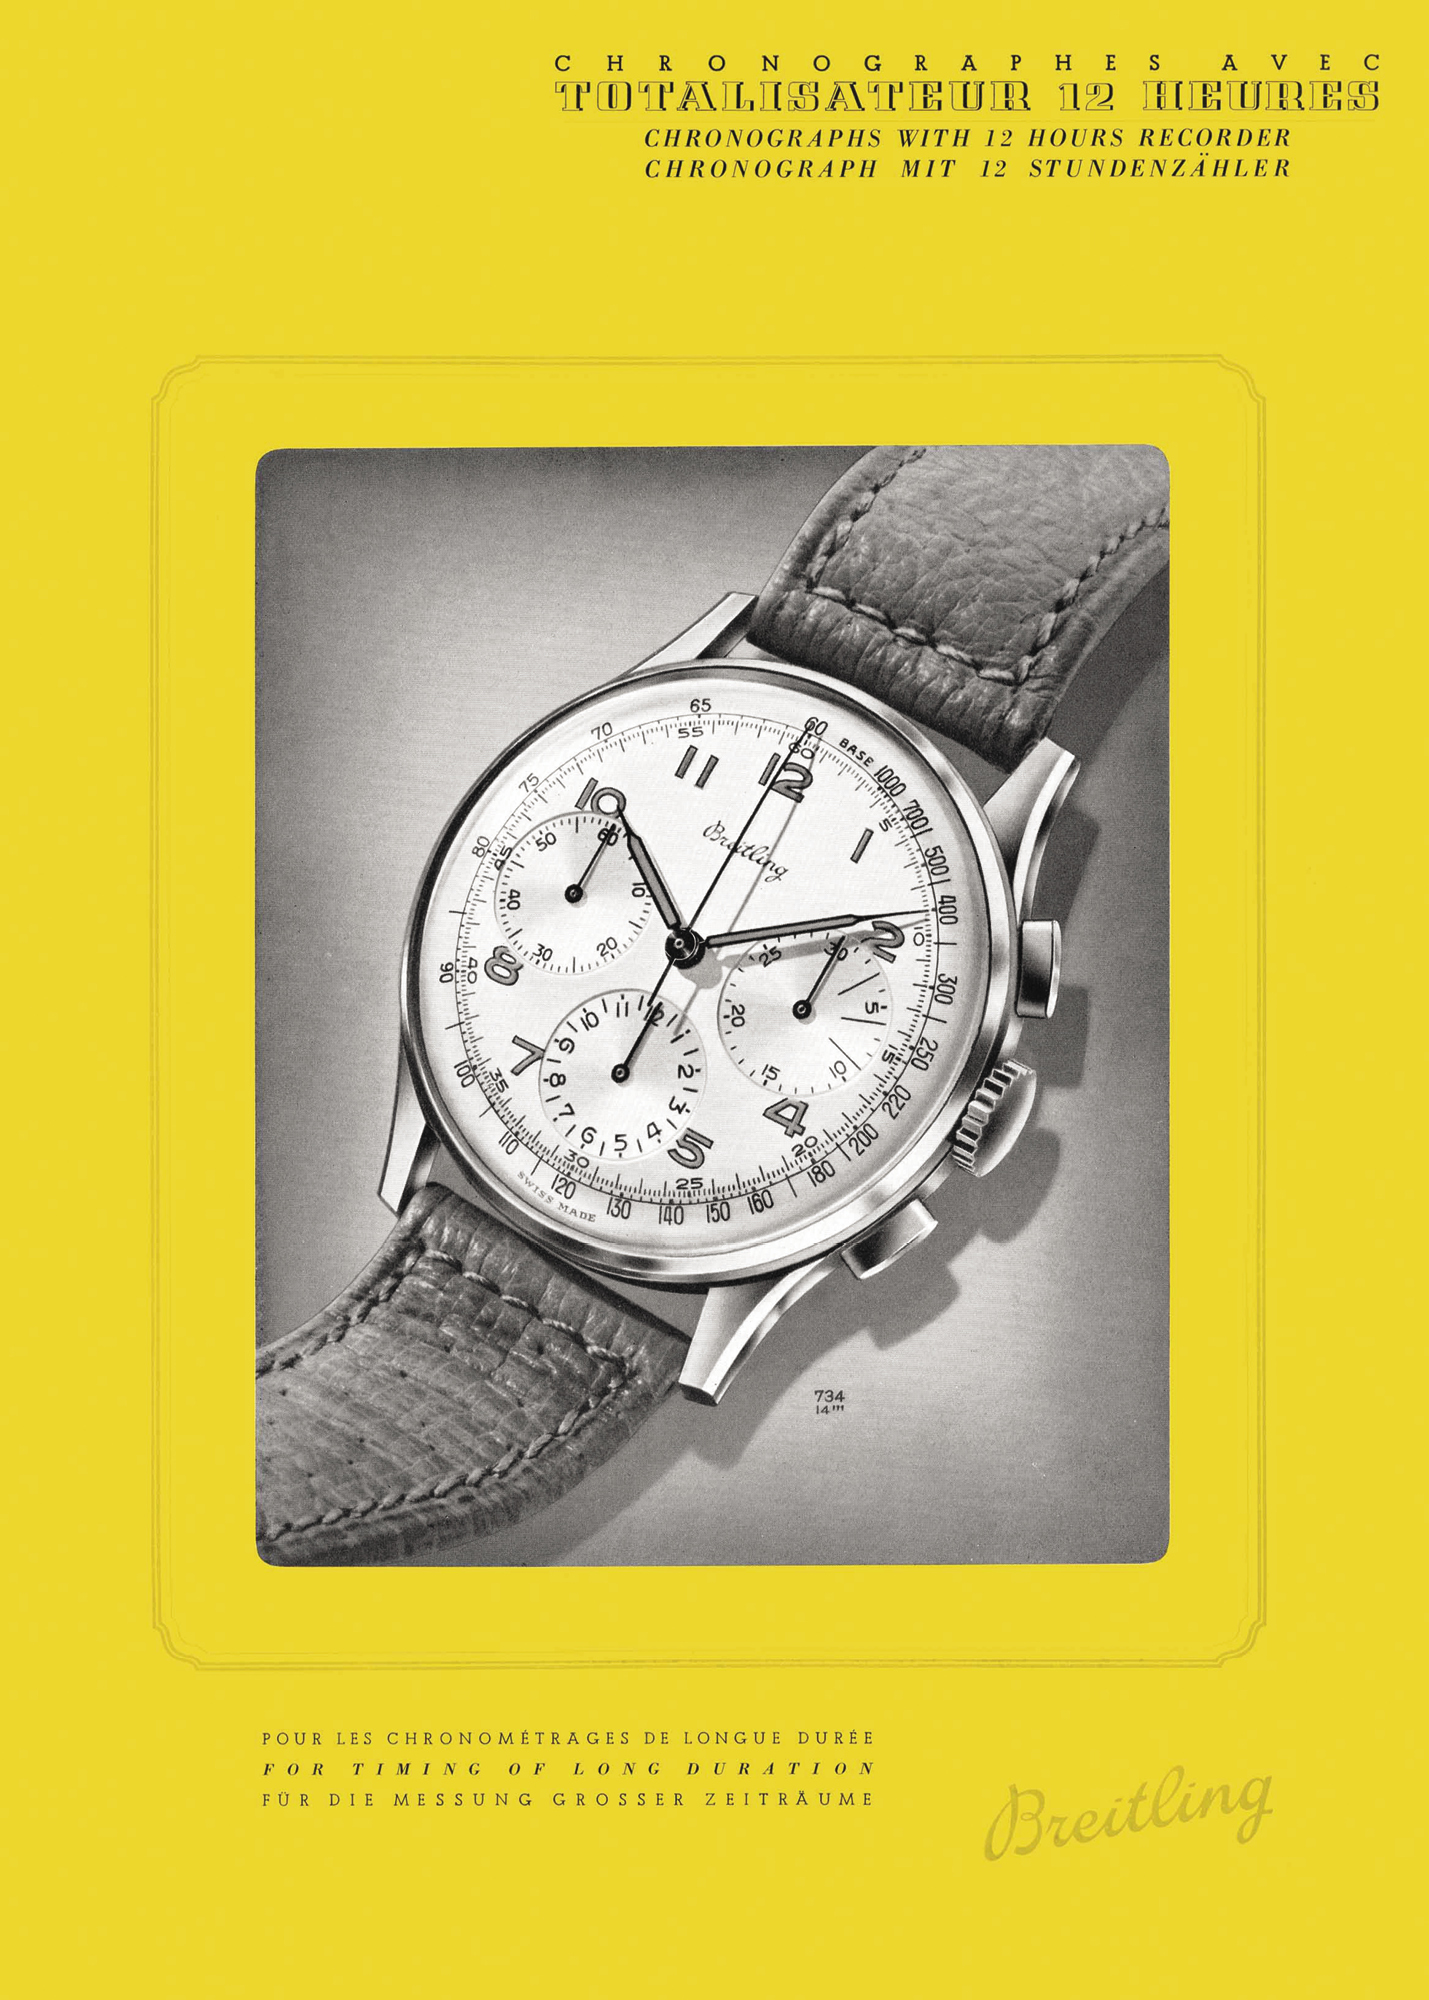 A Breitling Premier ad from the 1940s